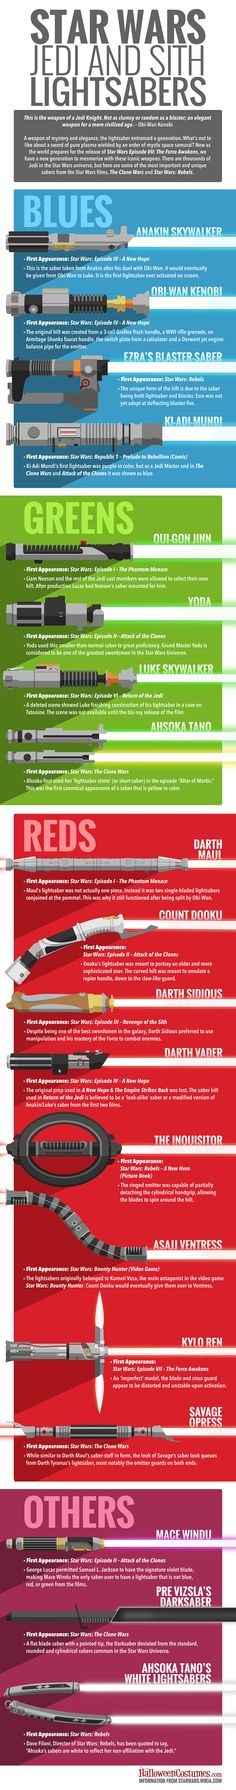 Star Wars Lightsabers Infographic http://geekxgirls.com/article.php?ID=5867